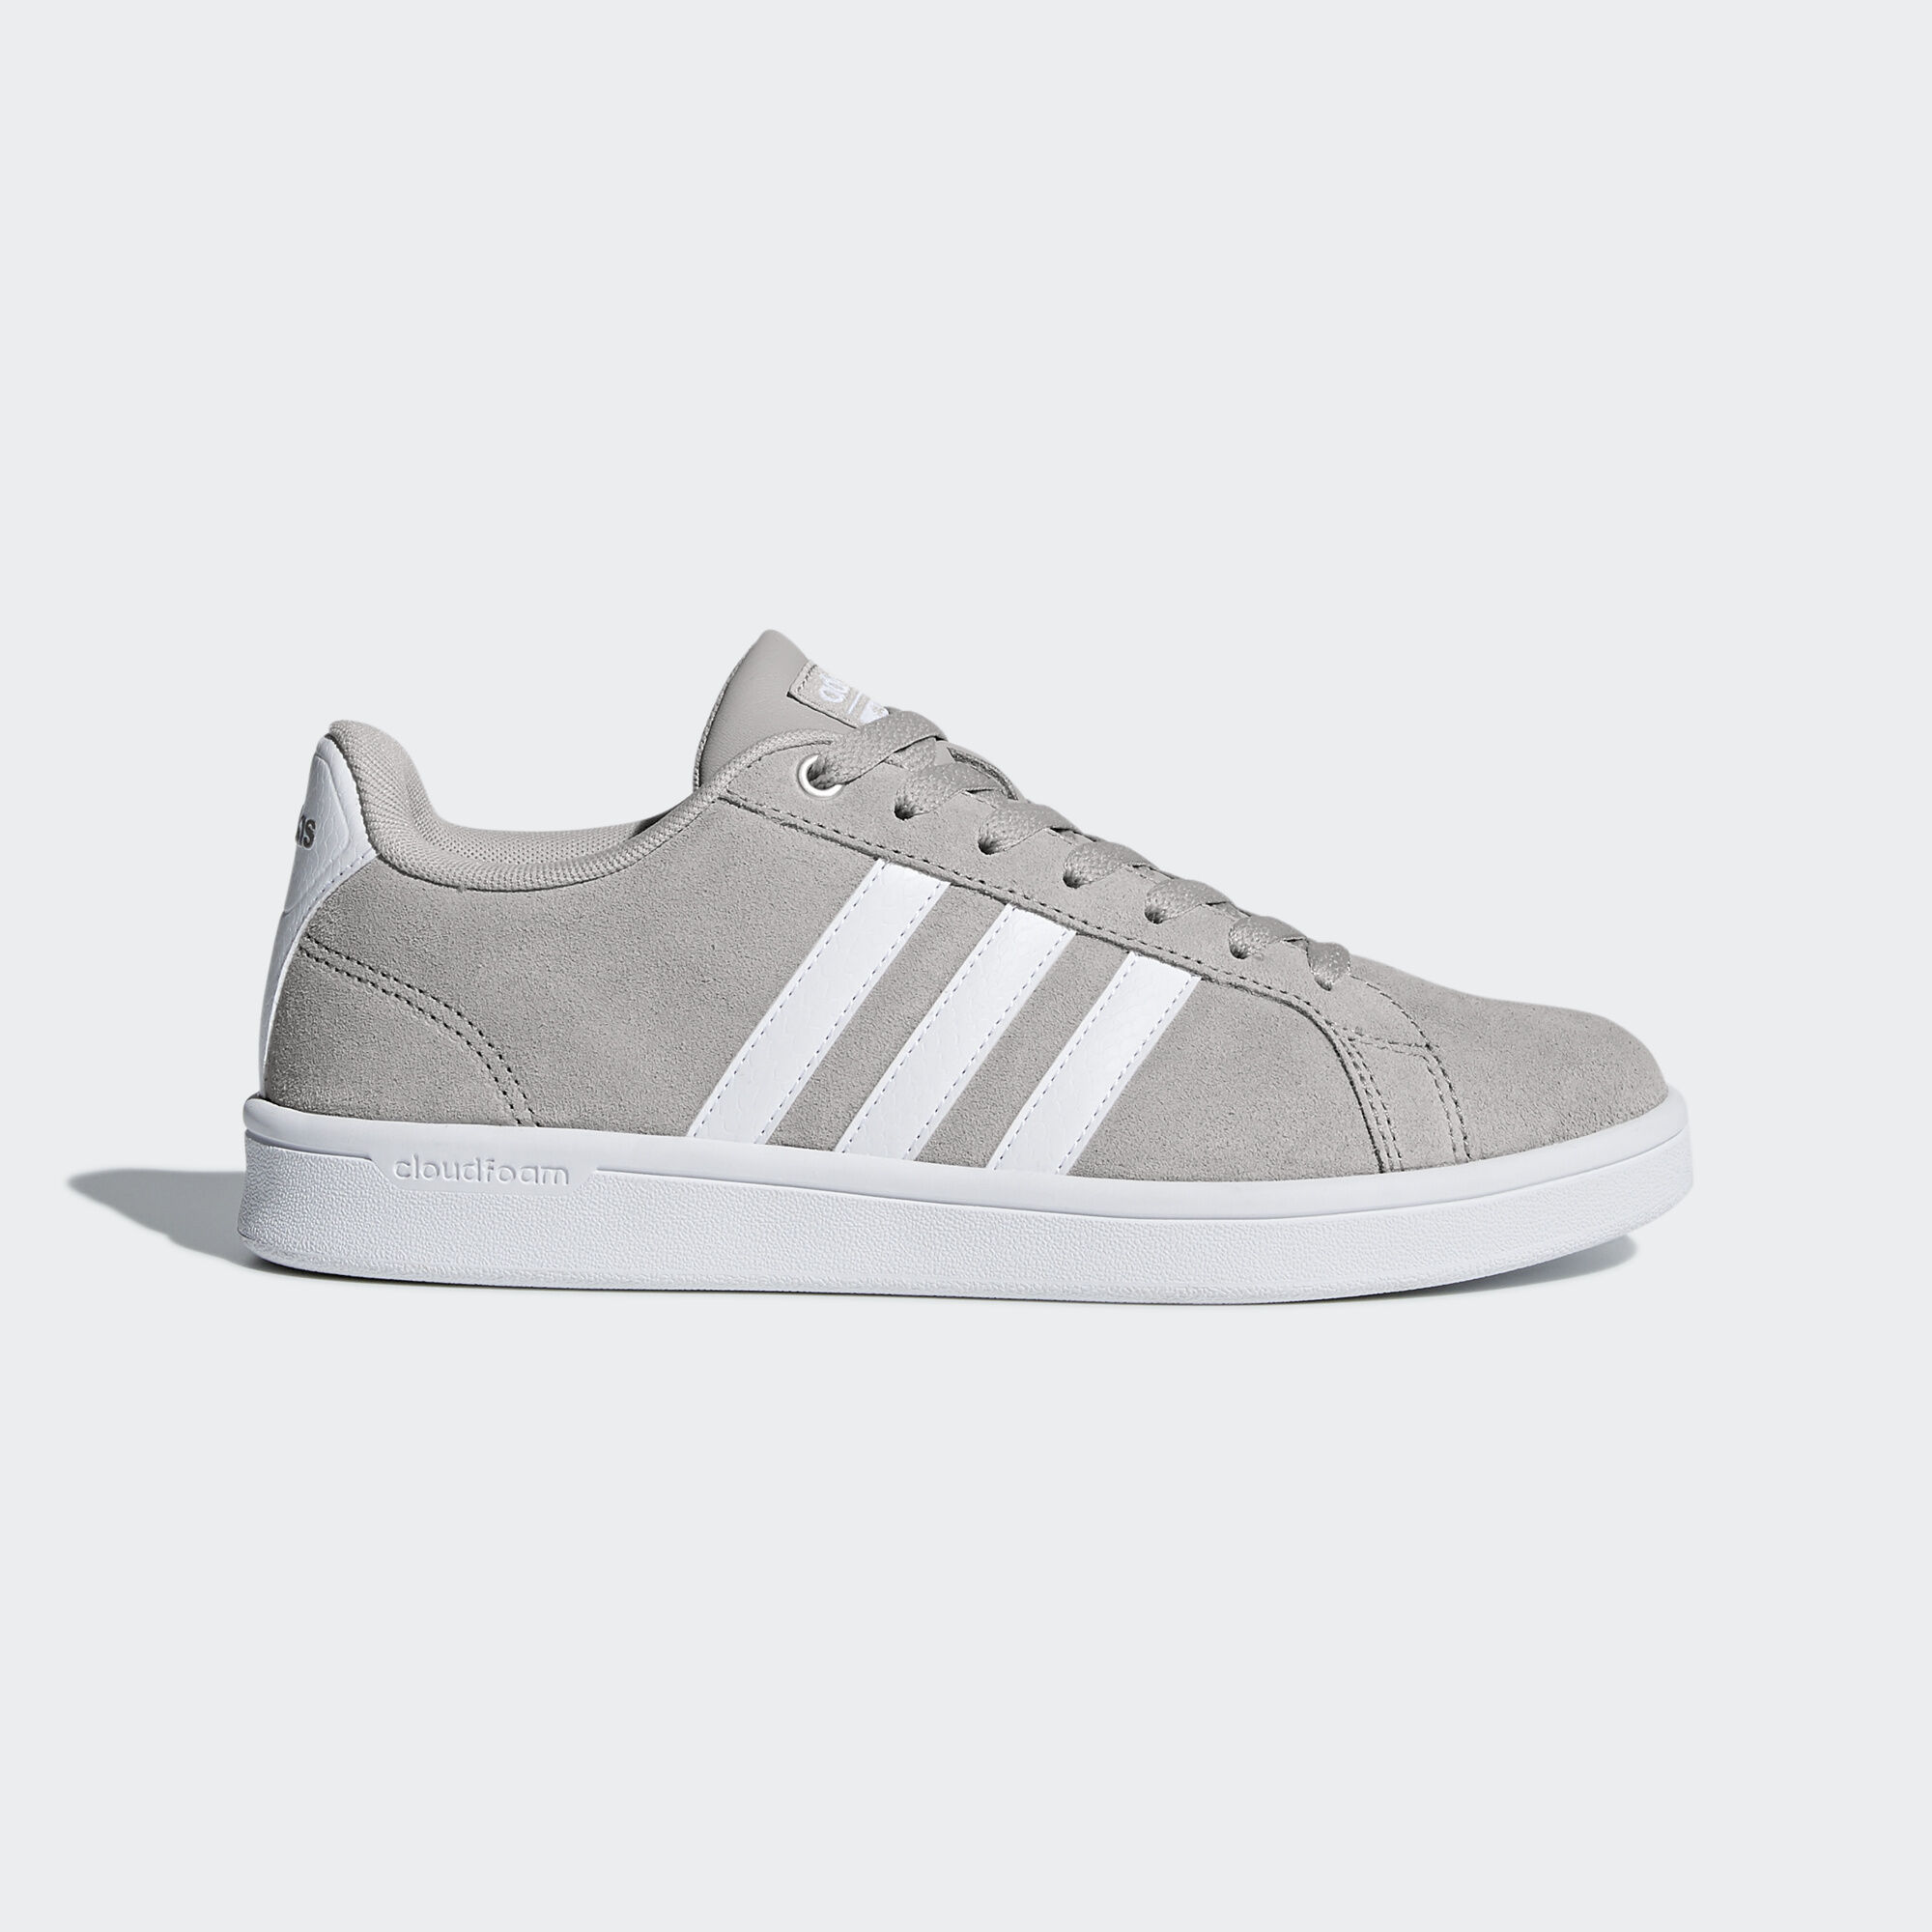 adidas - Cloudfoam Advantage Shoes Grey Two/Ftwr White/Matte Silver DB0848